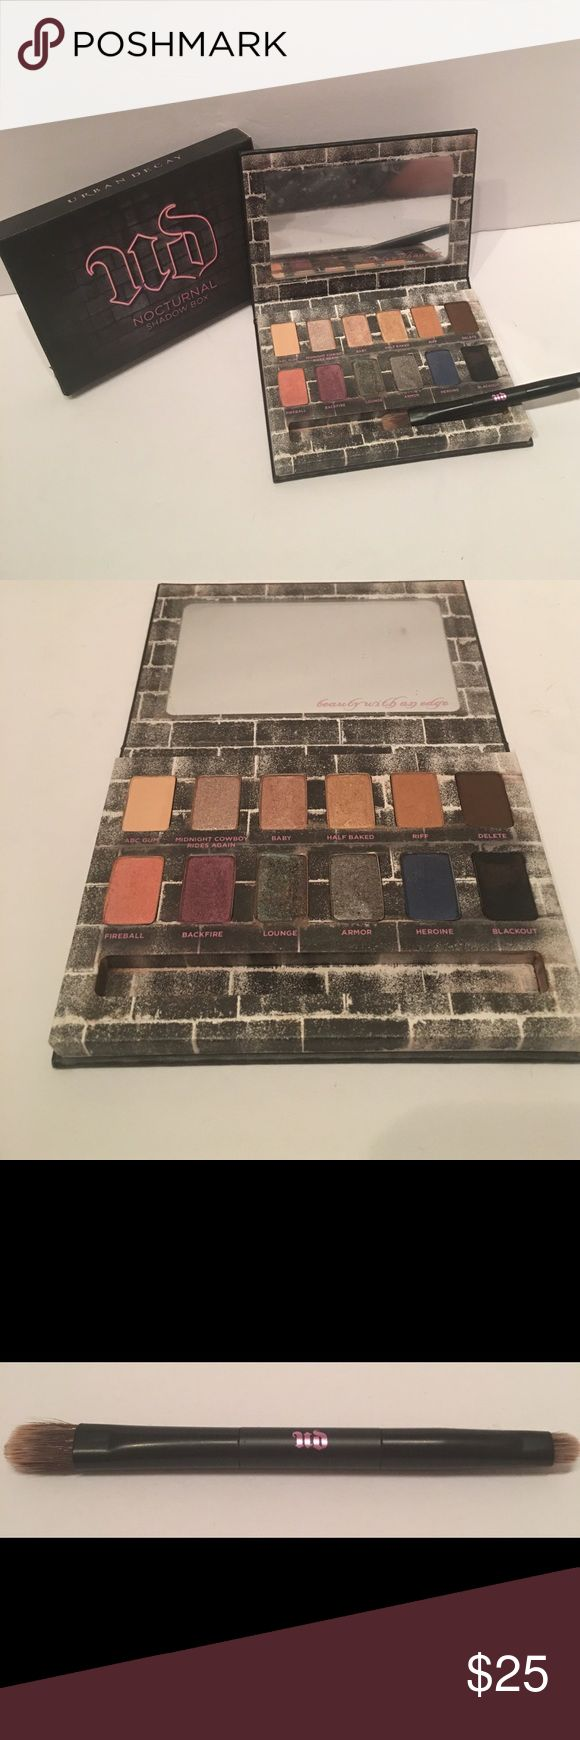 URBAN DECAY NOCTURNAL SHADOW BOX 1 color USED 5 times! Otherwise perfect! URBAN DECAY NOCTURNAL SHADOW BOX!!! Urban Decay Makeup Eyeshadow